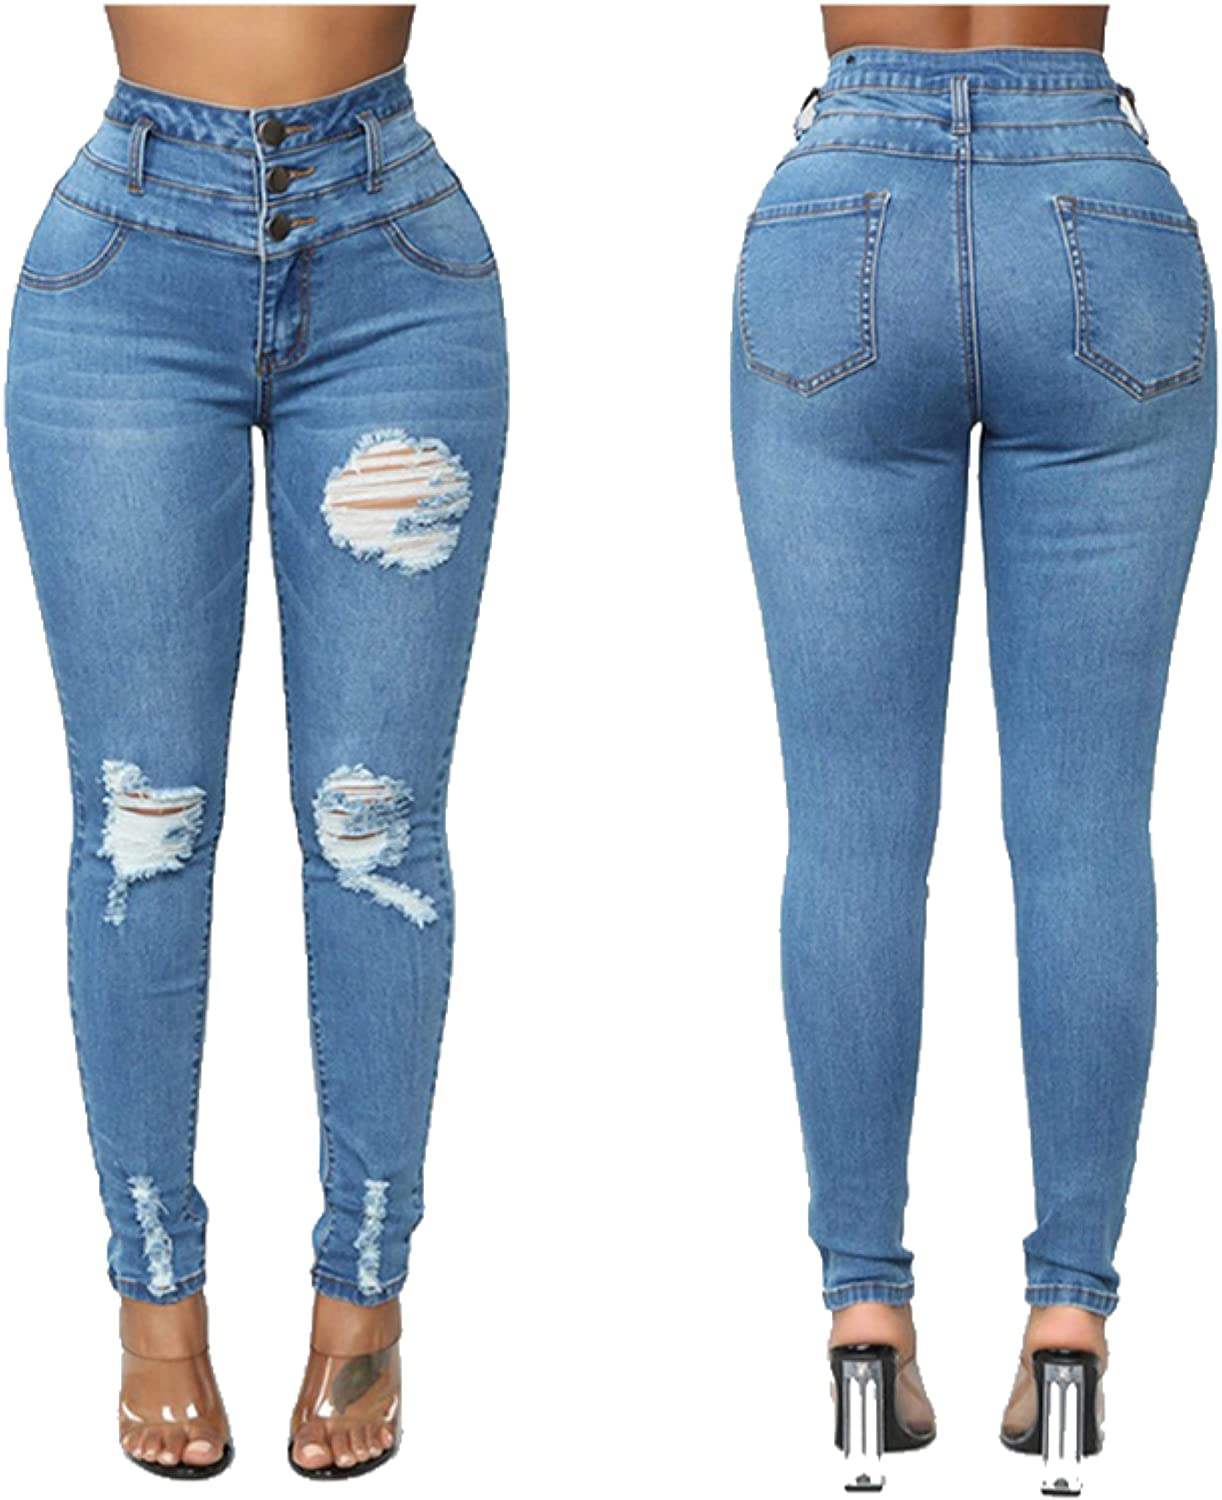 TO CAUSE OF AFFECTION TCOA Women Stretch Ripped Distressed Jeans Skinny High Waist Pants Shredded